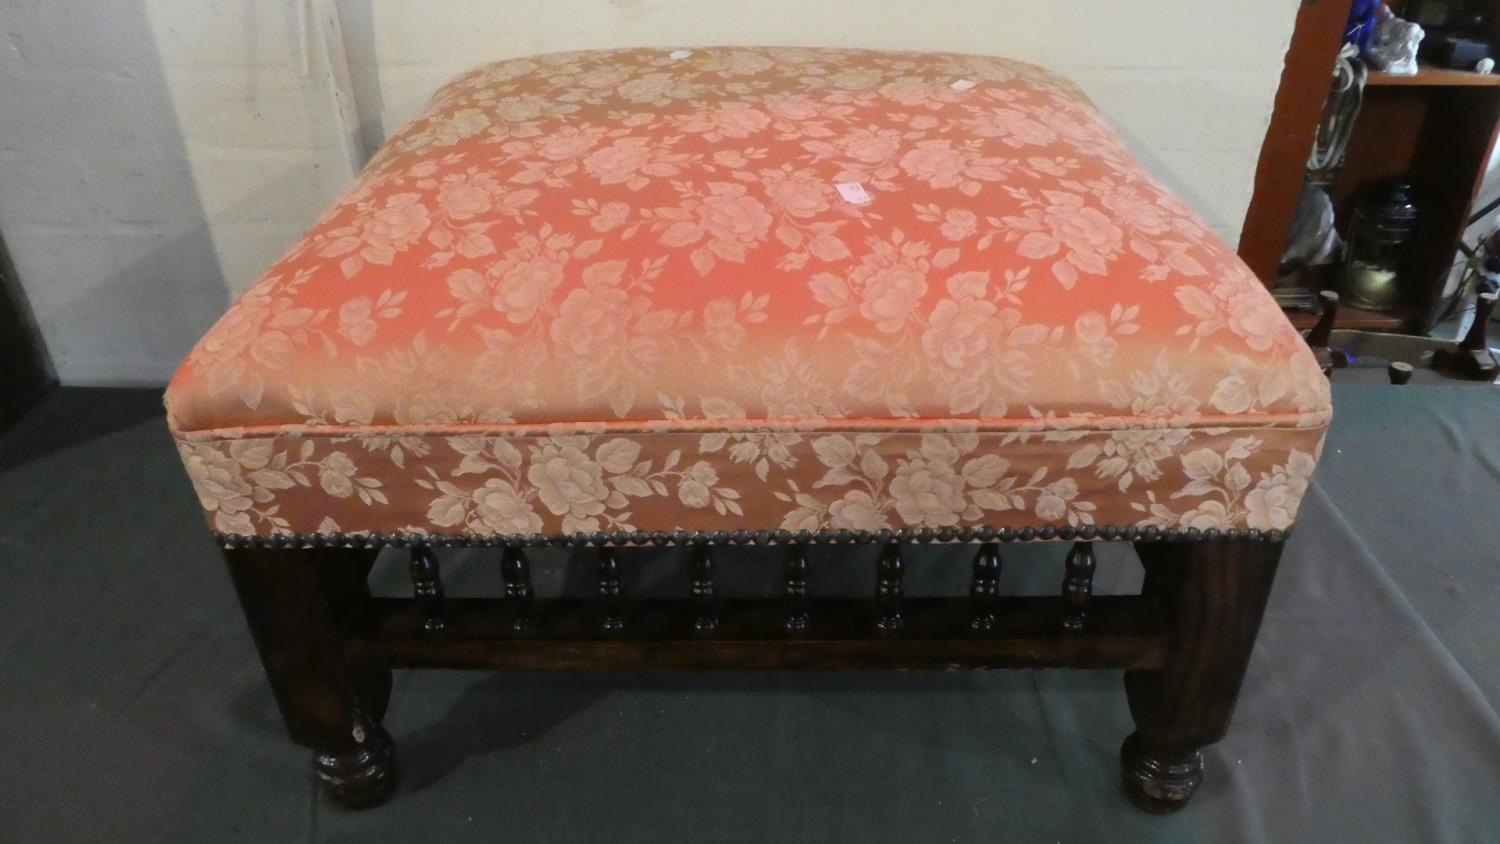 Lot 29 - A Late 19th Century Square Upholstered Foot Stool with Spindle Supports, 57cm